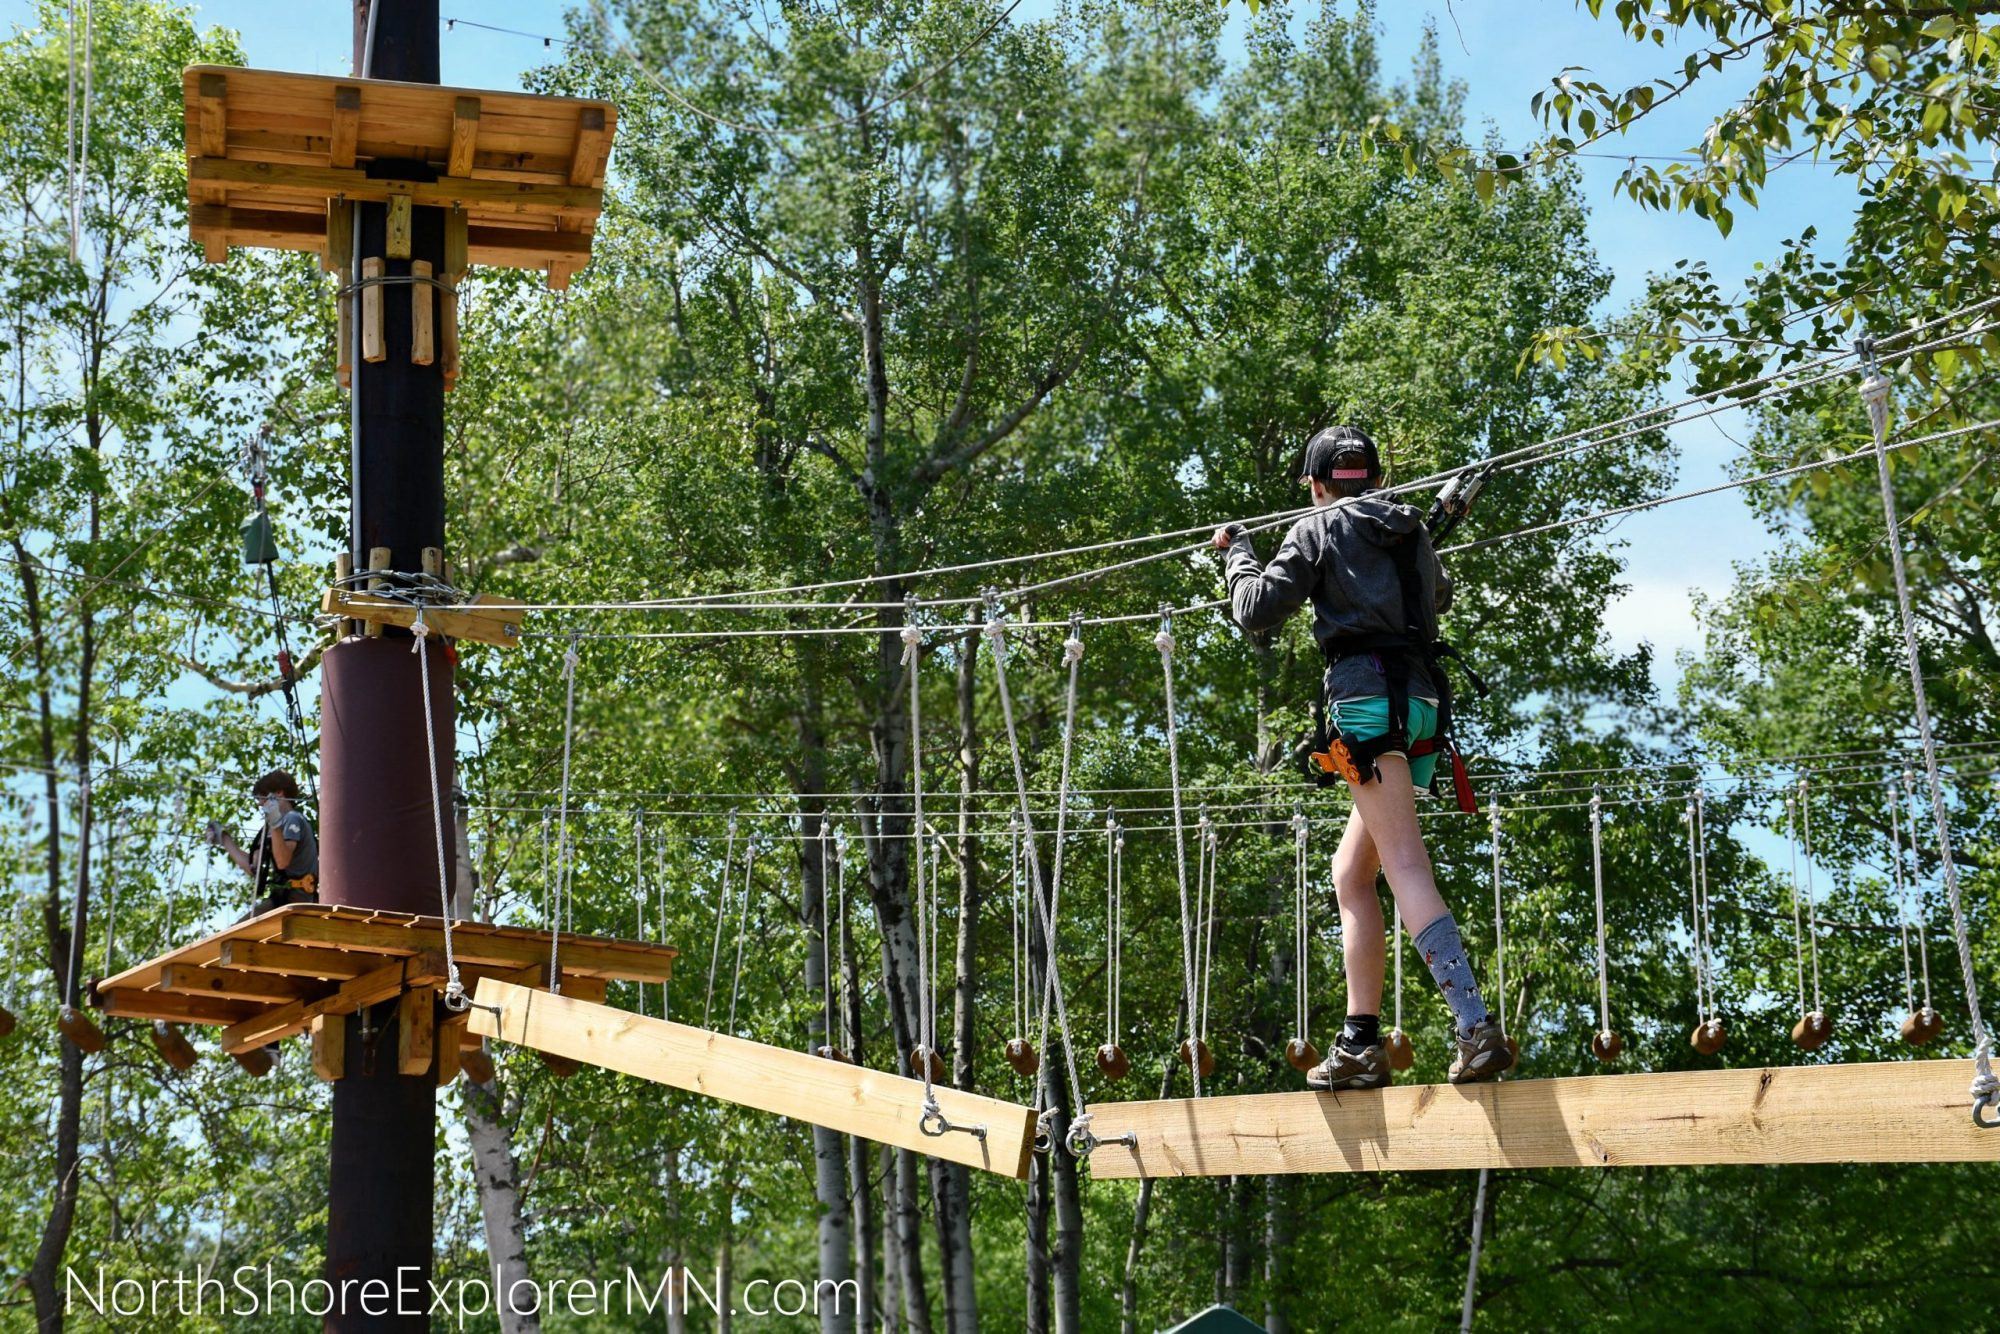 Climb on the aerial obstacle courses